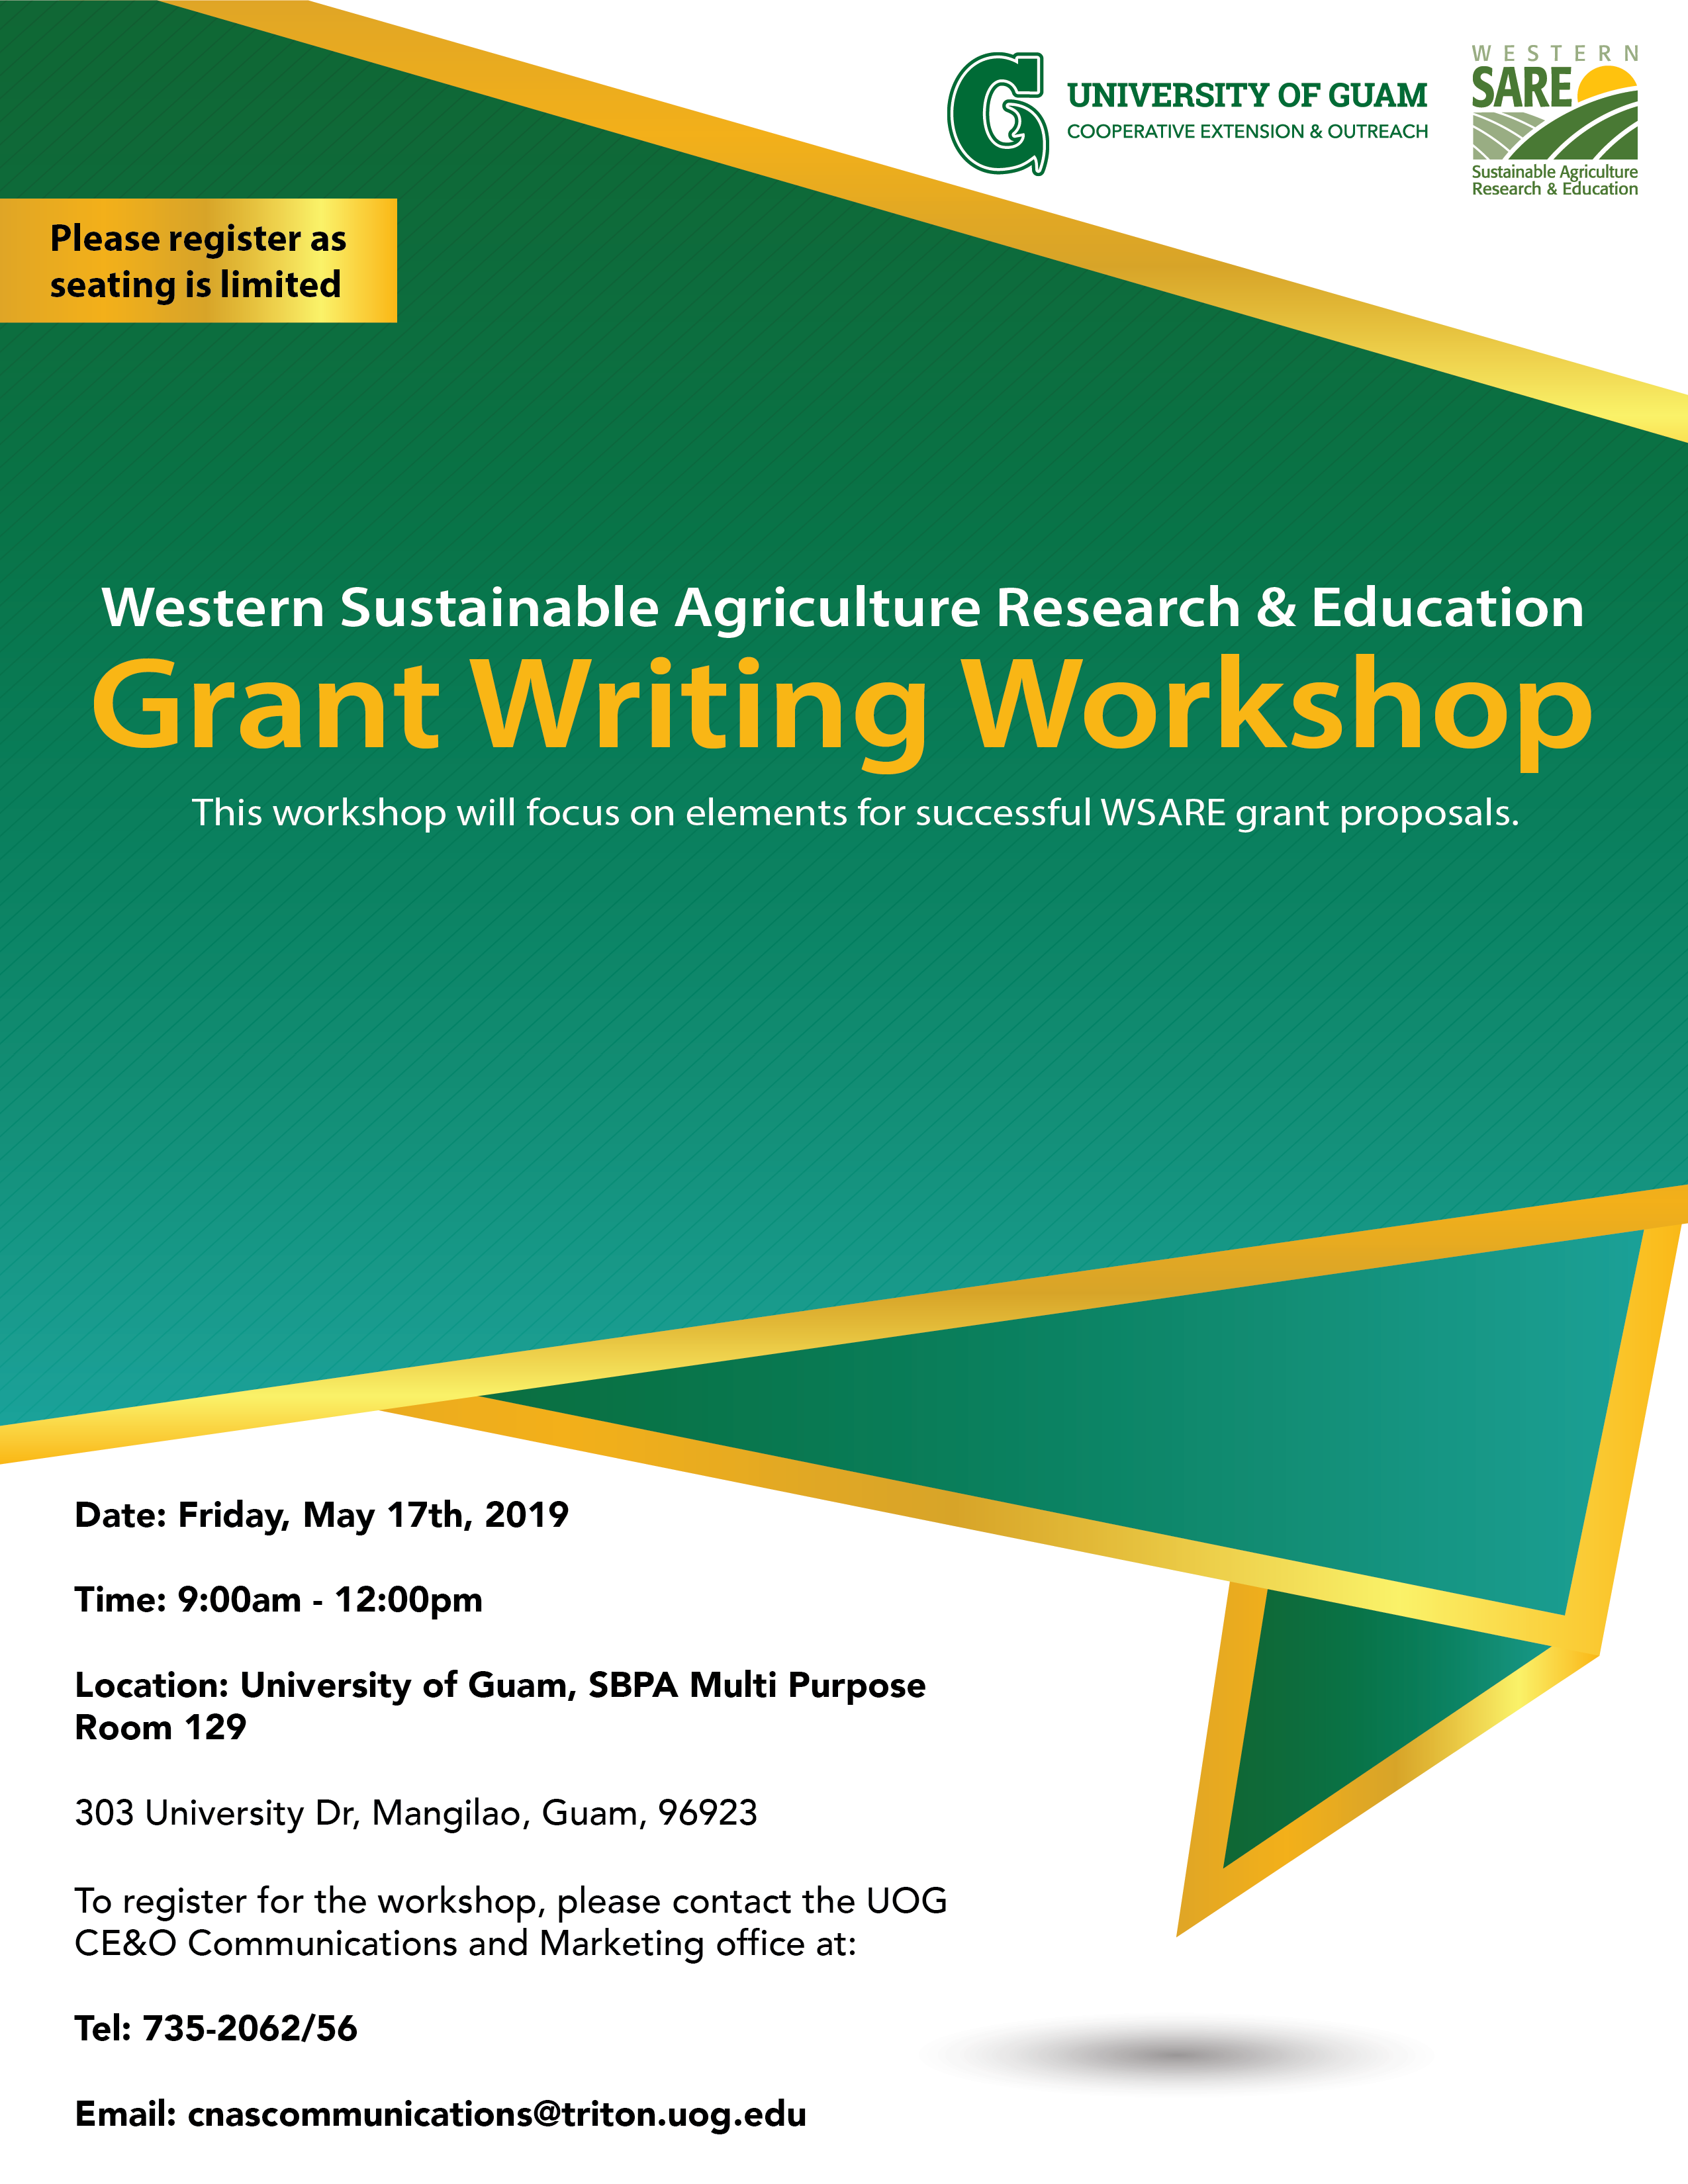 Western Sustainable Agriculture Research & Education: Grant Writing Workshop